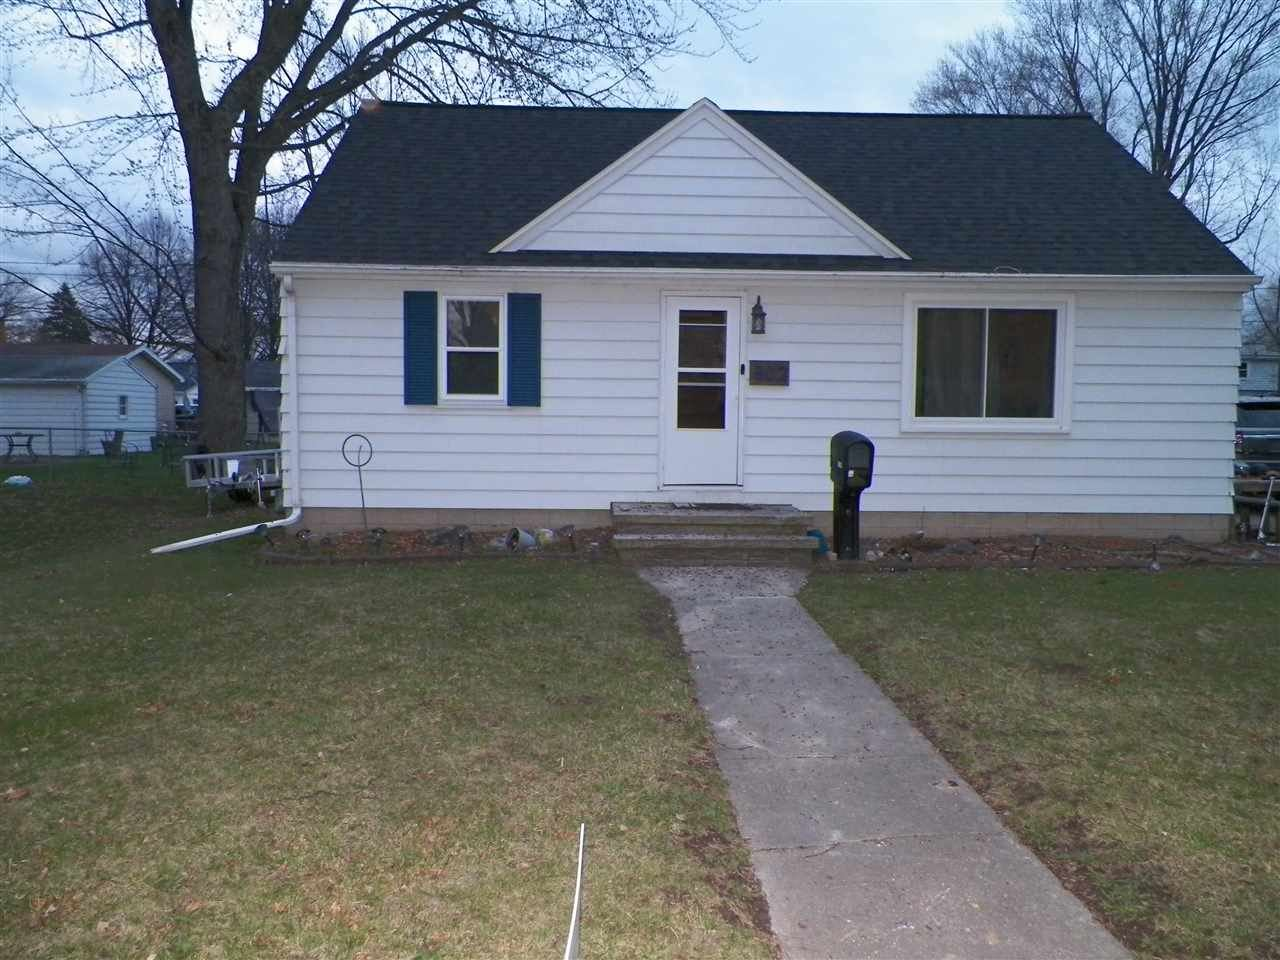 802 PARK Street, Green Bay, WI 54302 - MLS#: 50238407